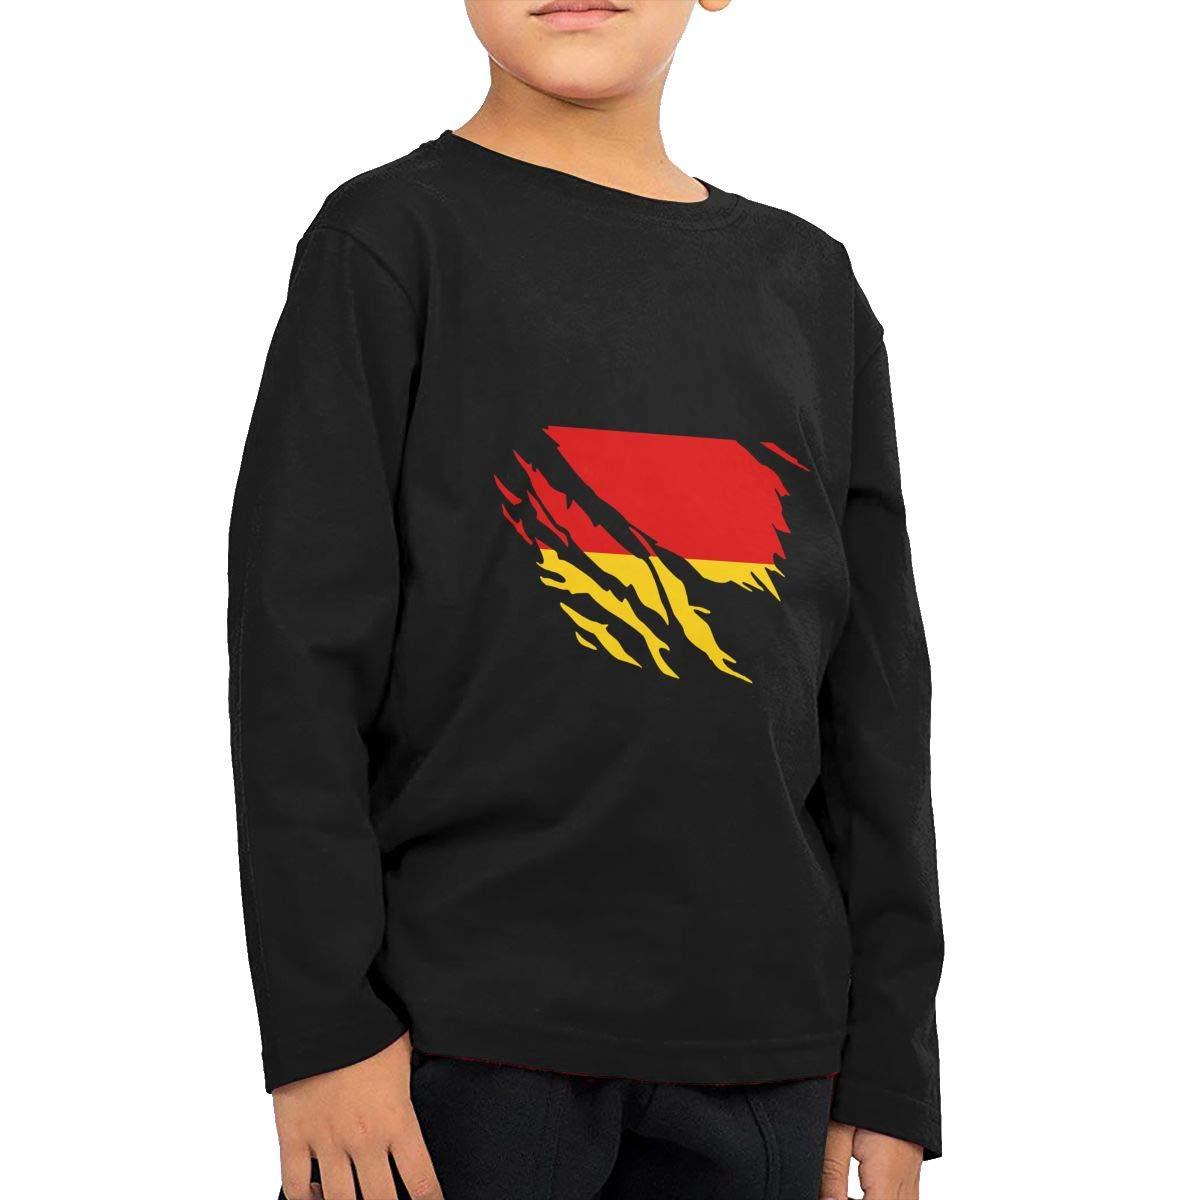 Ripped German Flag Novelty Toddler Kid Baby Boys Girls Long Sleeve Shirt Tops